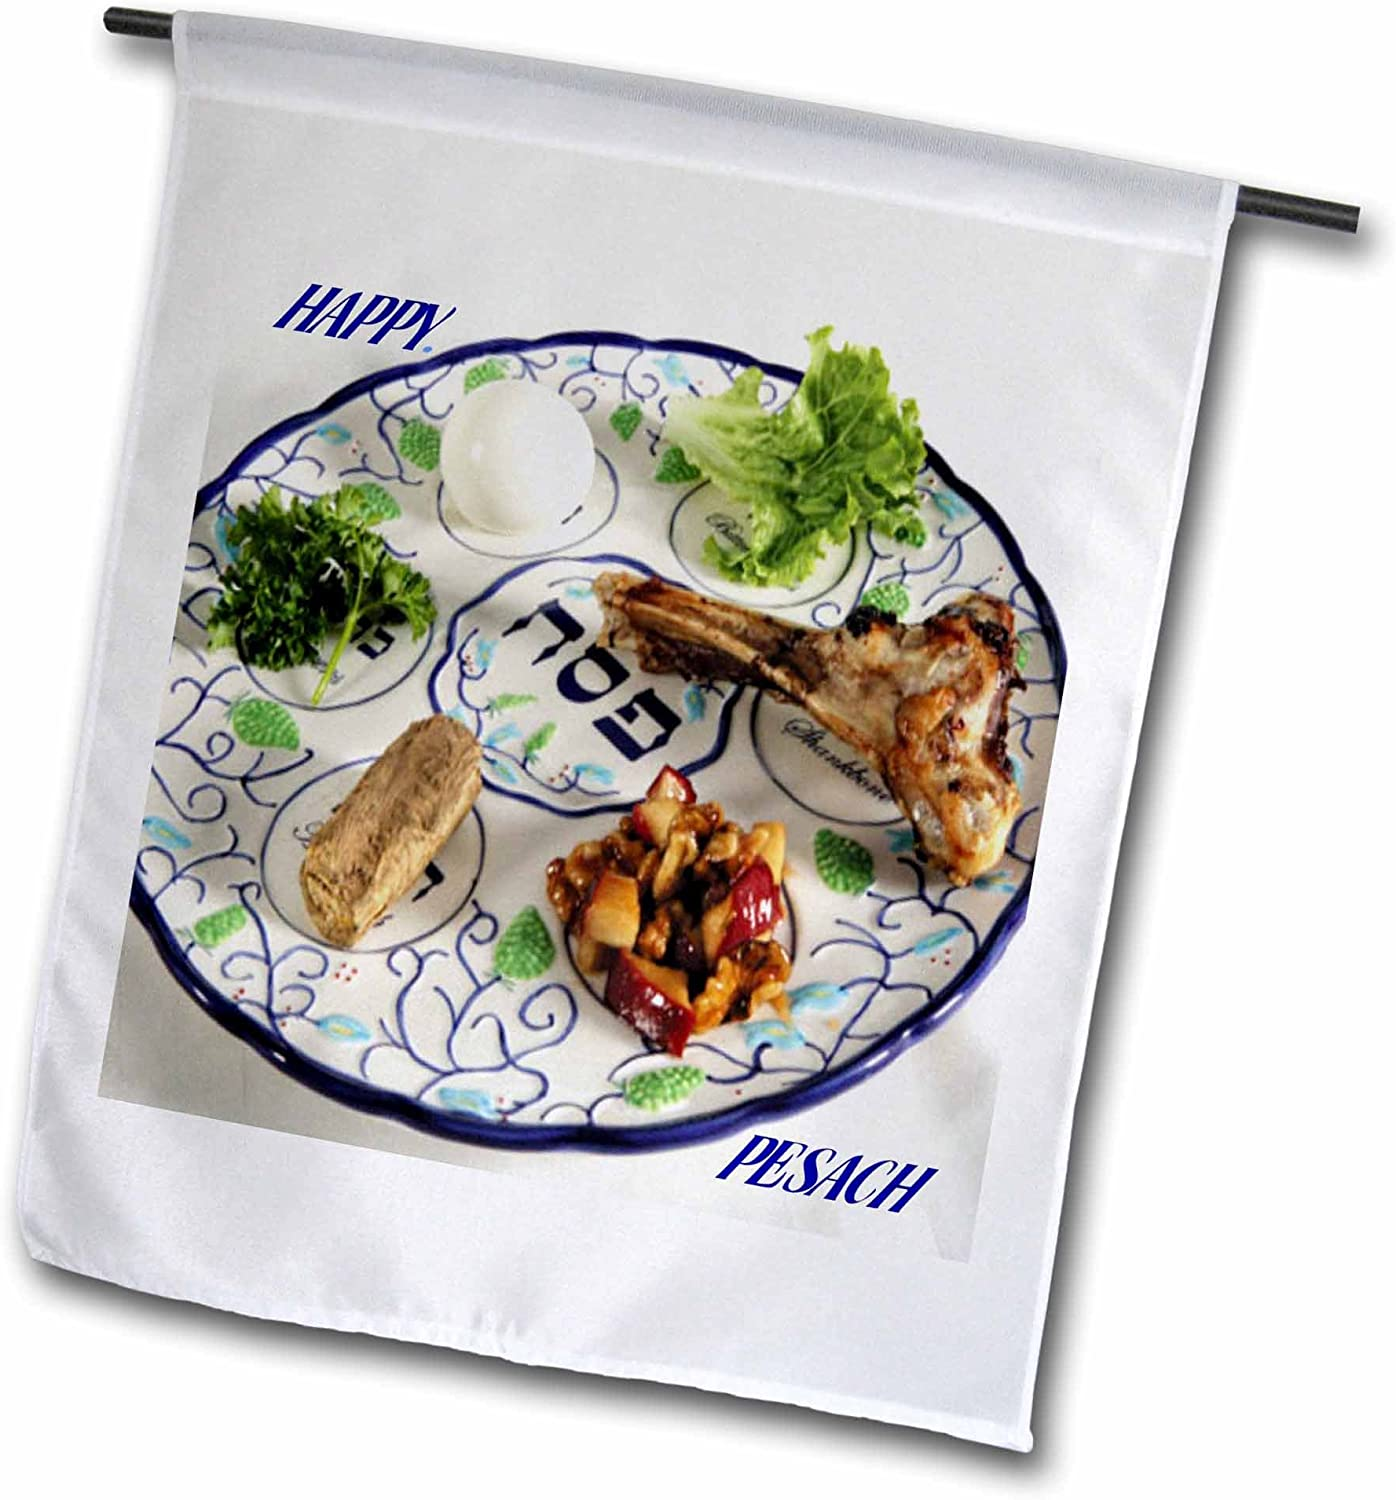 3dRose fl_37364_1 Pesach Plate with Passover Foods Garden Flag, 12 by 18-Inch